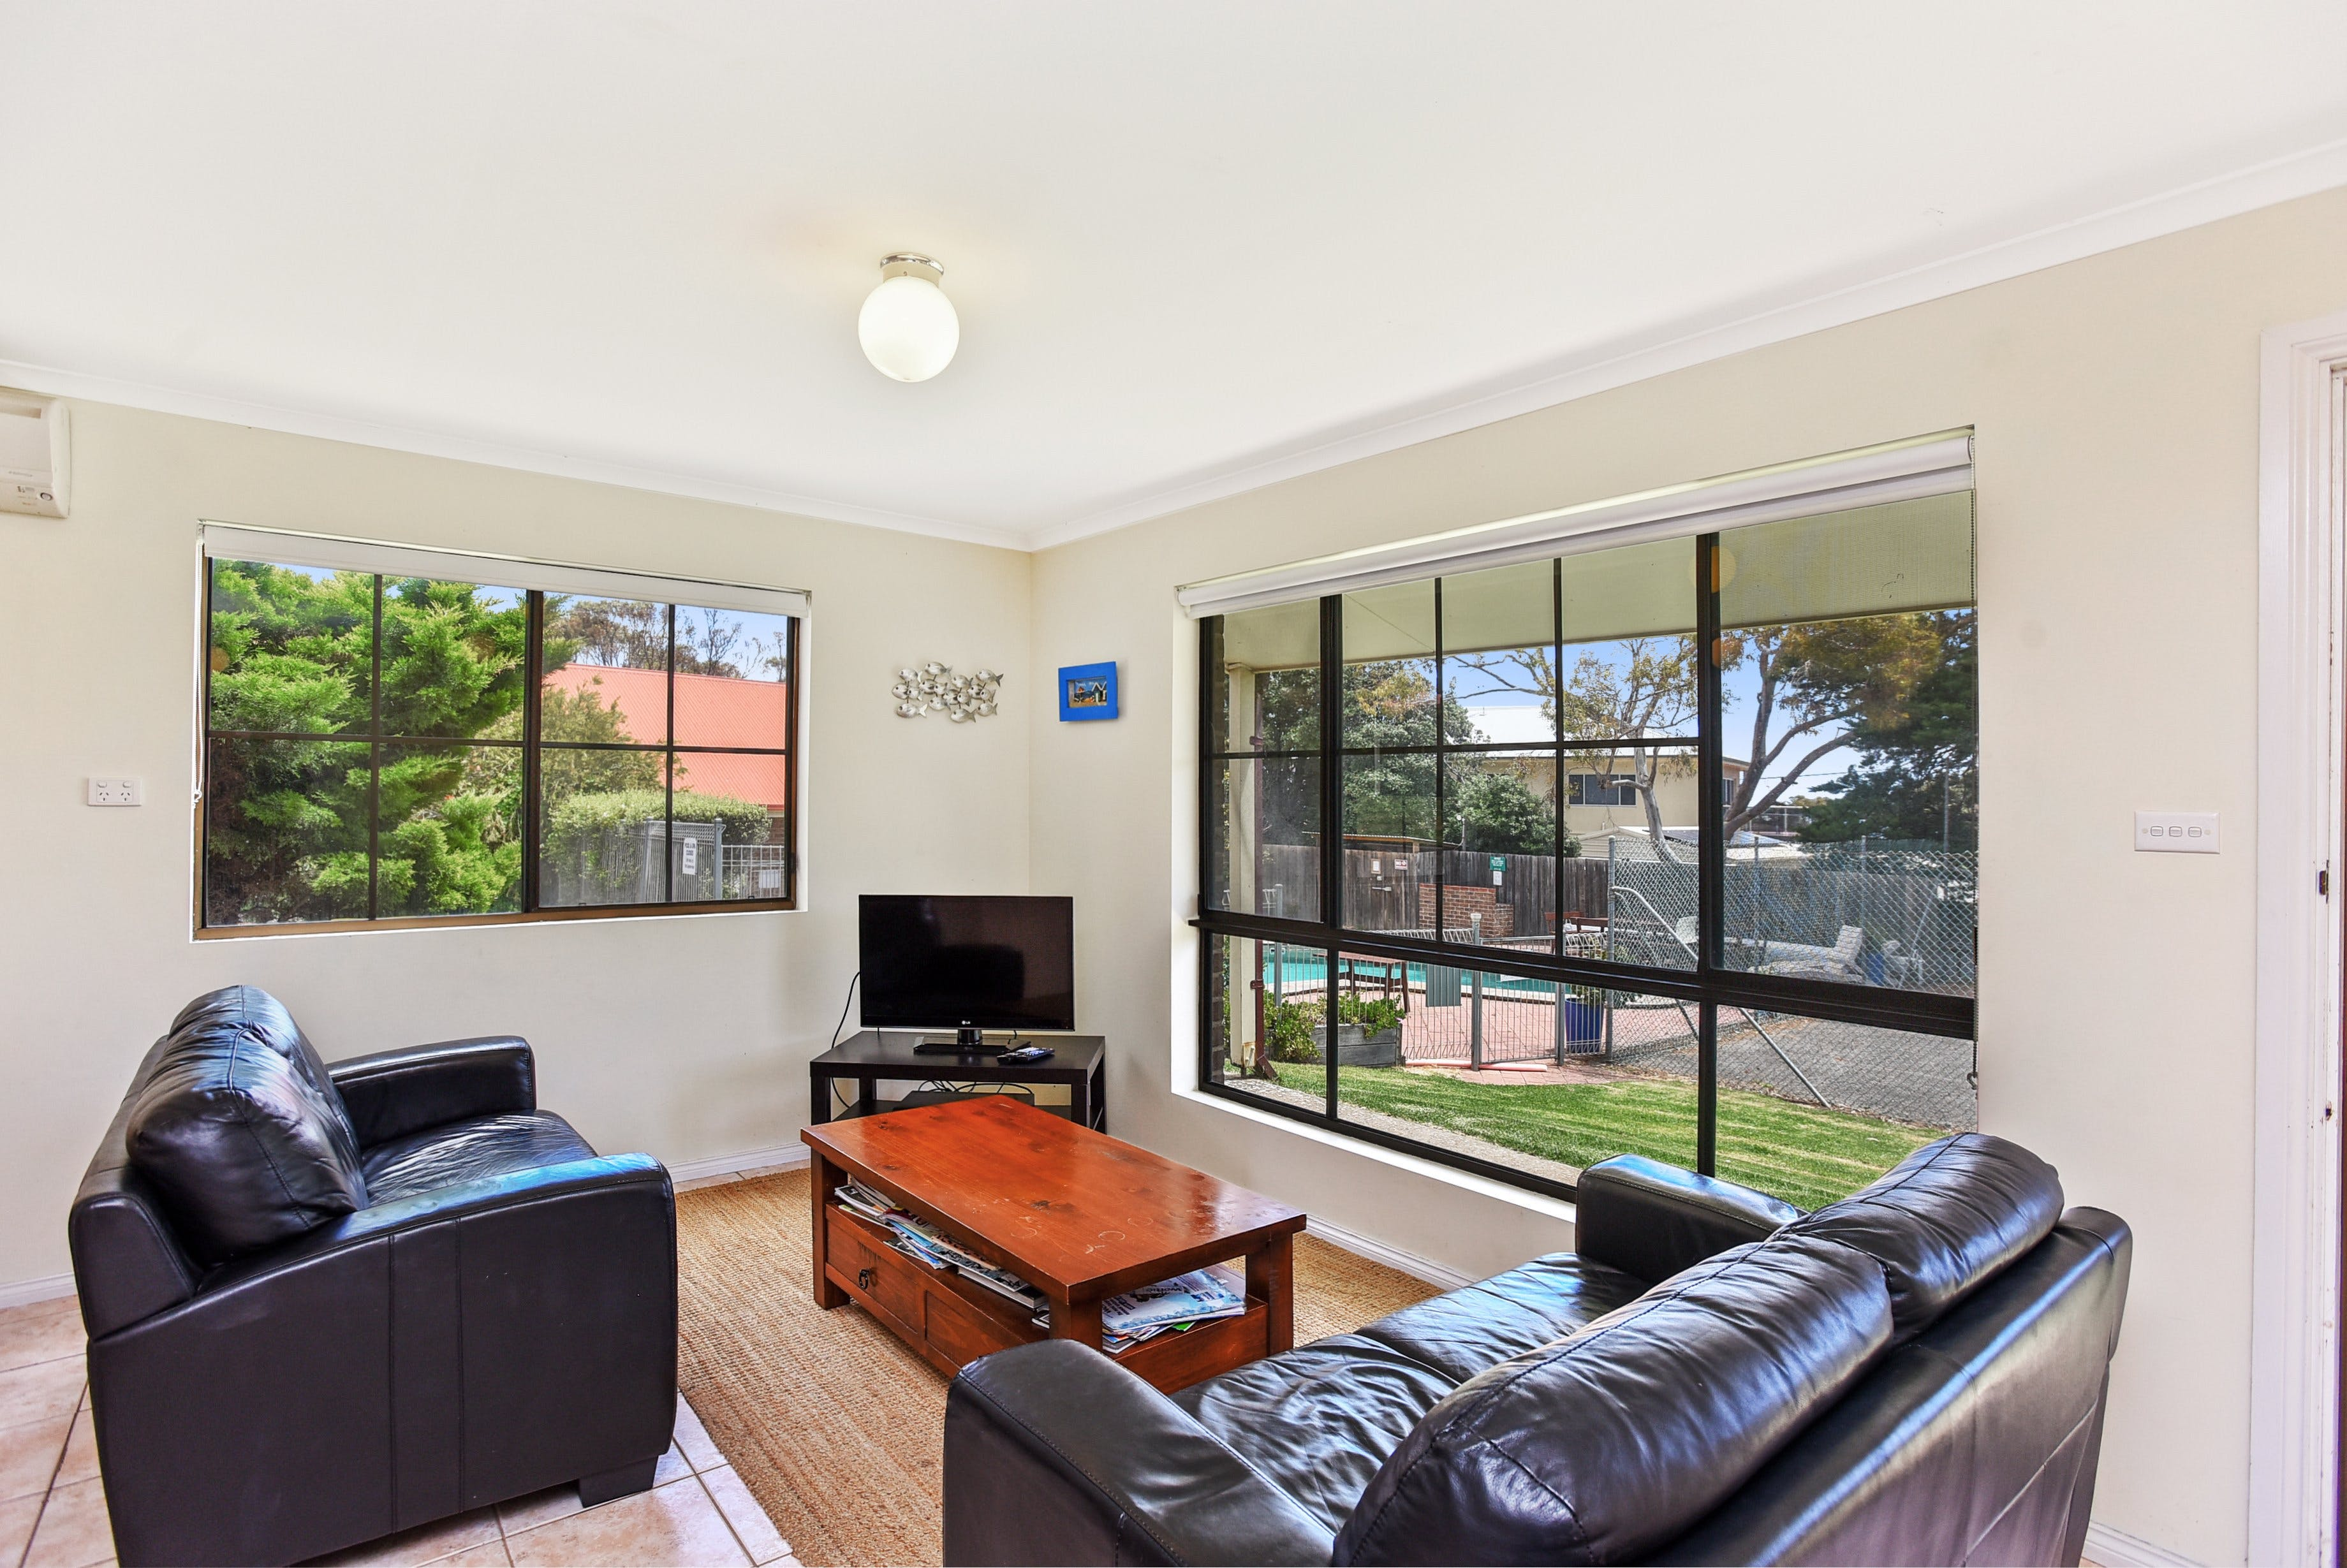 Unit 3 5-/ Surf Avenue Carrickalinga - Accommodation Fremantle